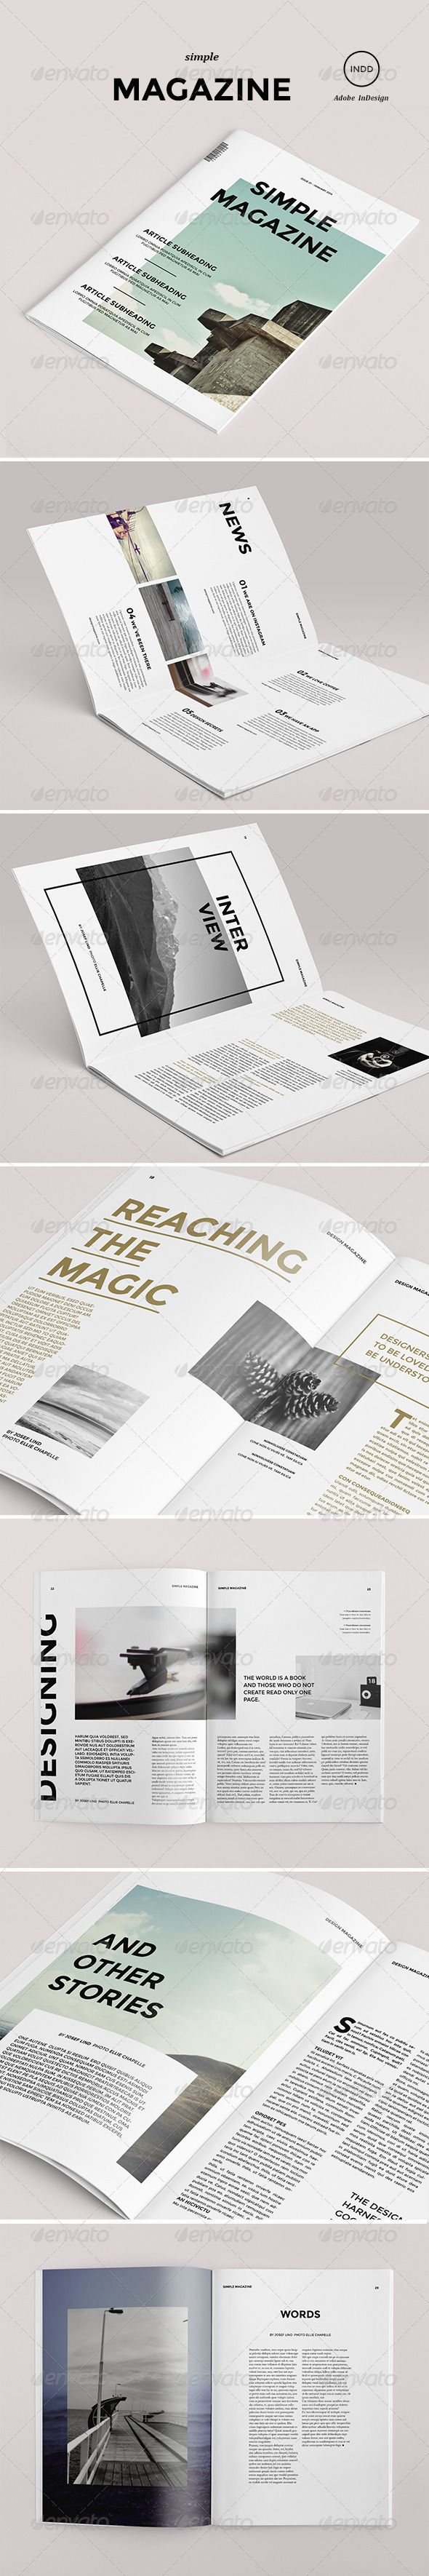 Simple Magazine, Editorial, Layout, Graphic Design, Typography